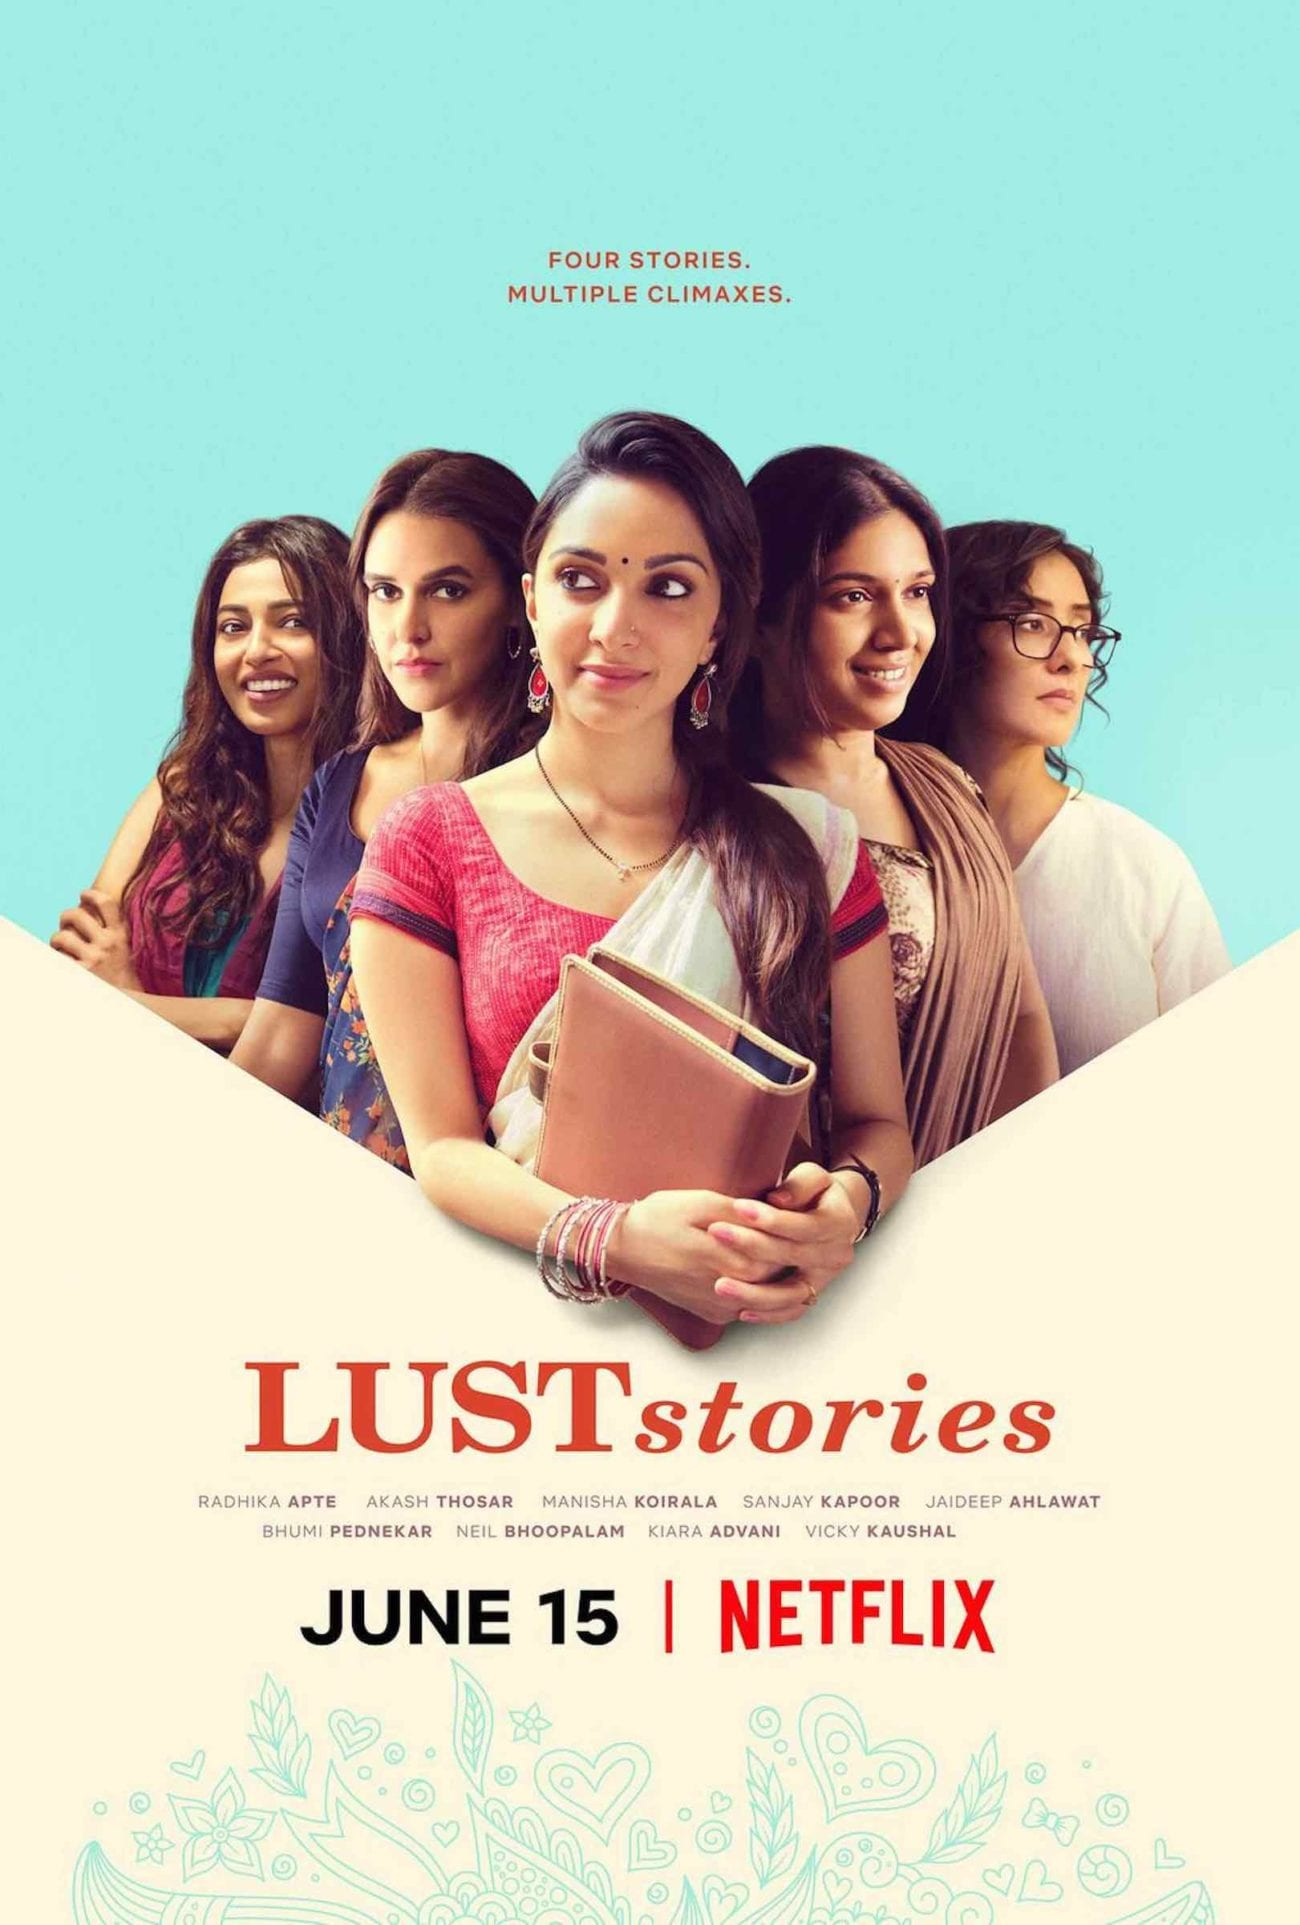 We at Film Daily have created this small guide on the themes and ideas discussed in each of these rich stories within Netflix's 'Lust Stories'.